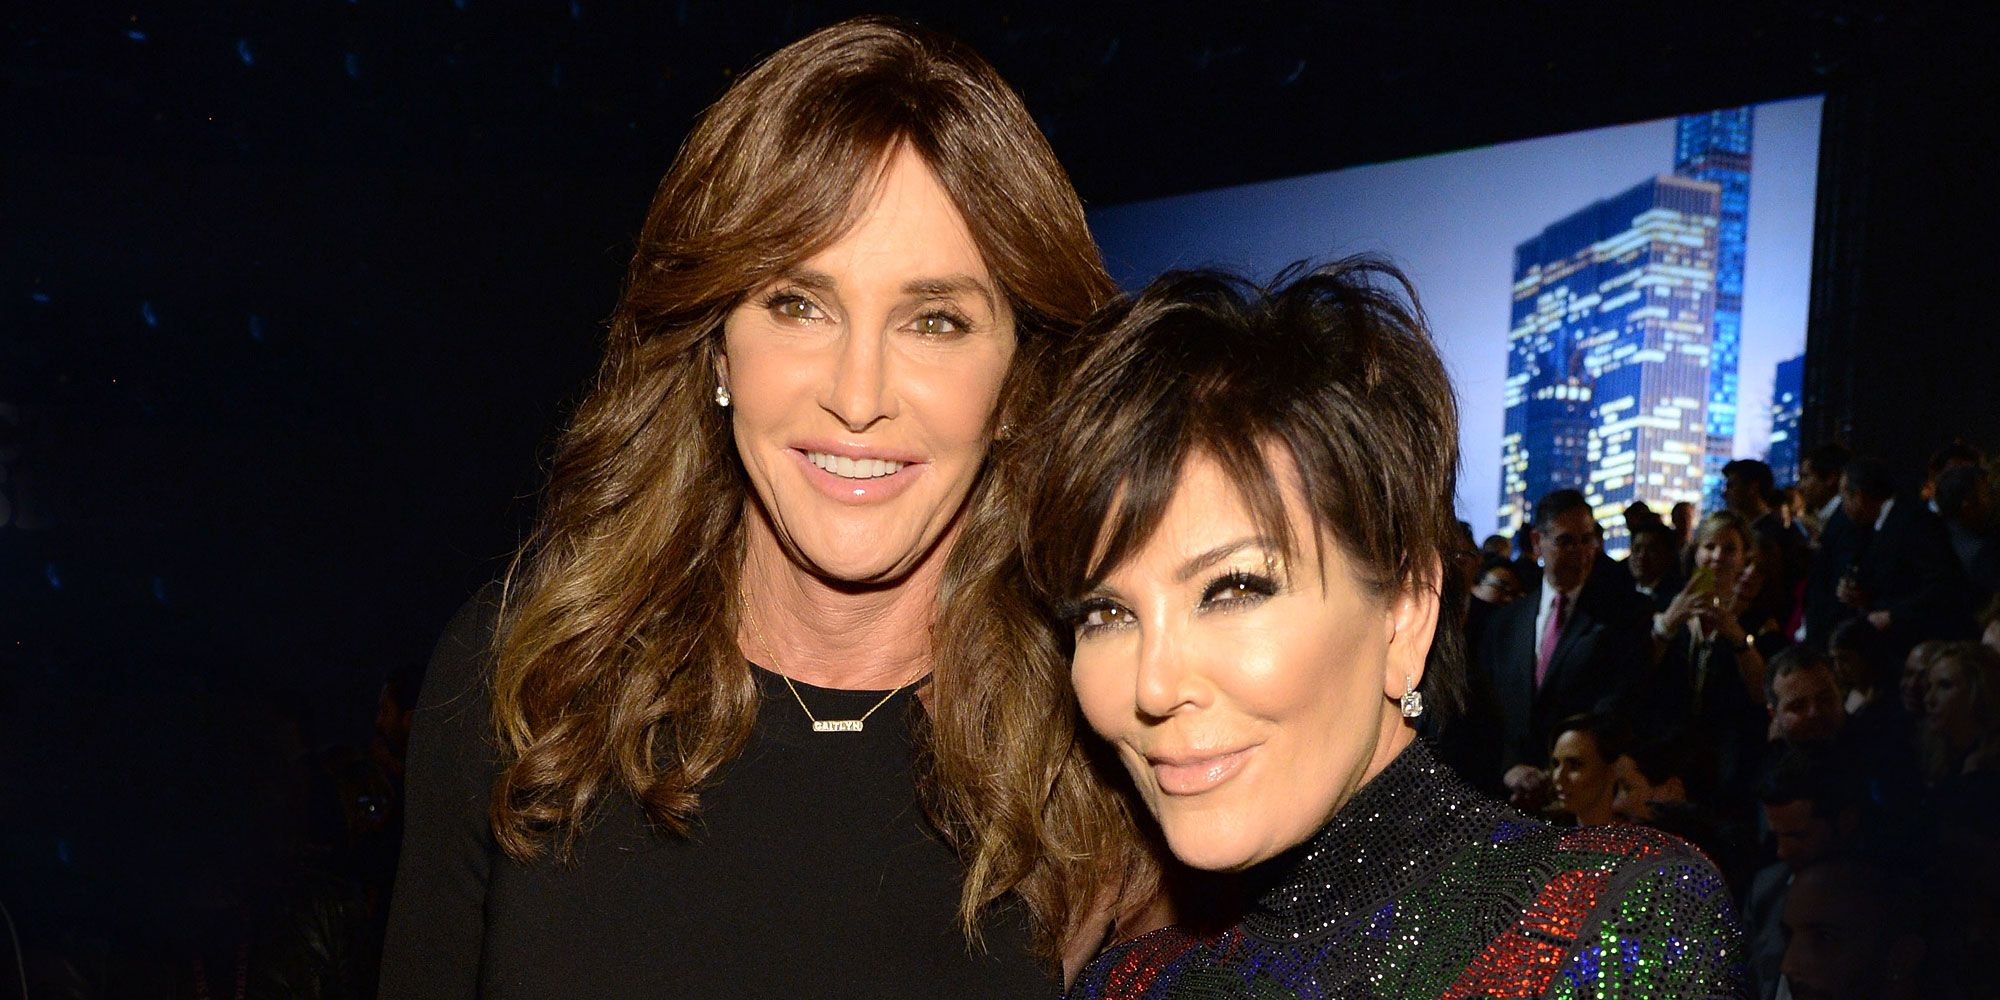 Kris Jenner Refuses to Call Caitlyn Jenner By Her New Name forecasting